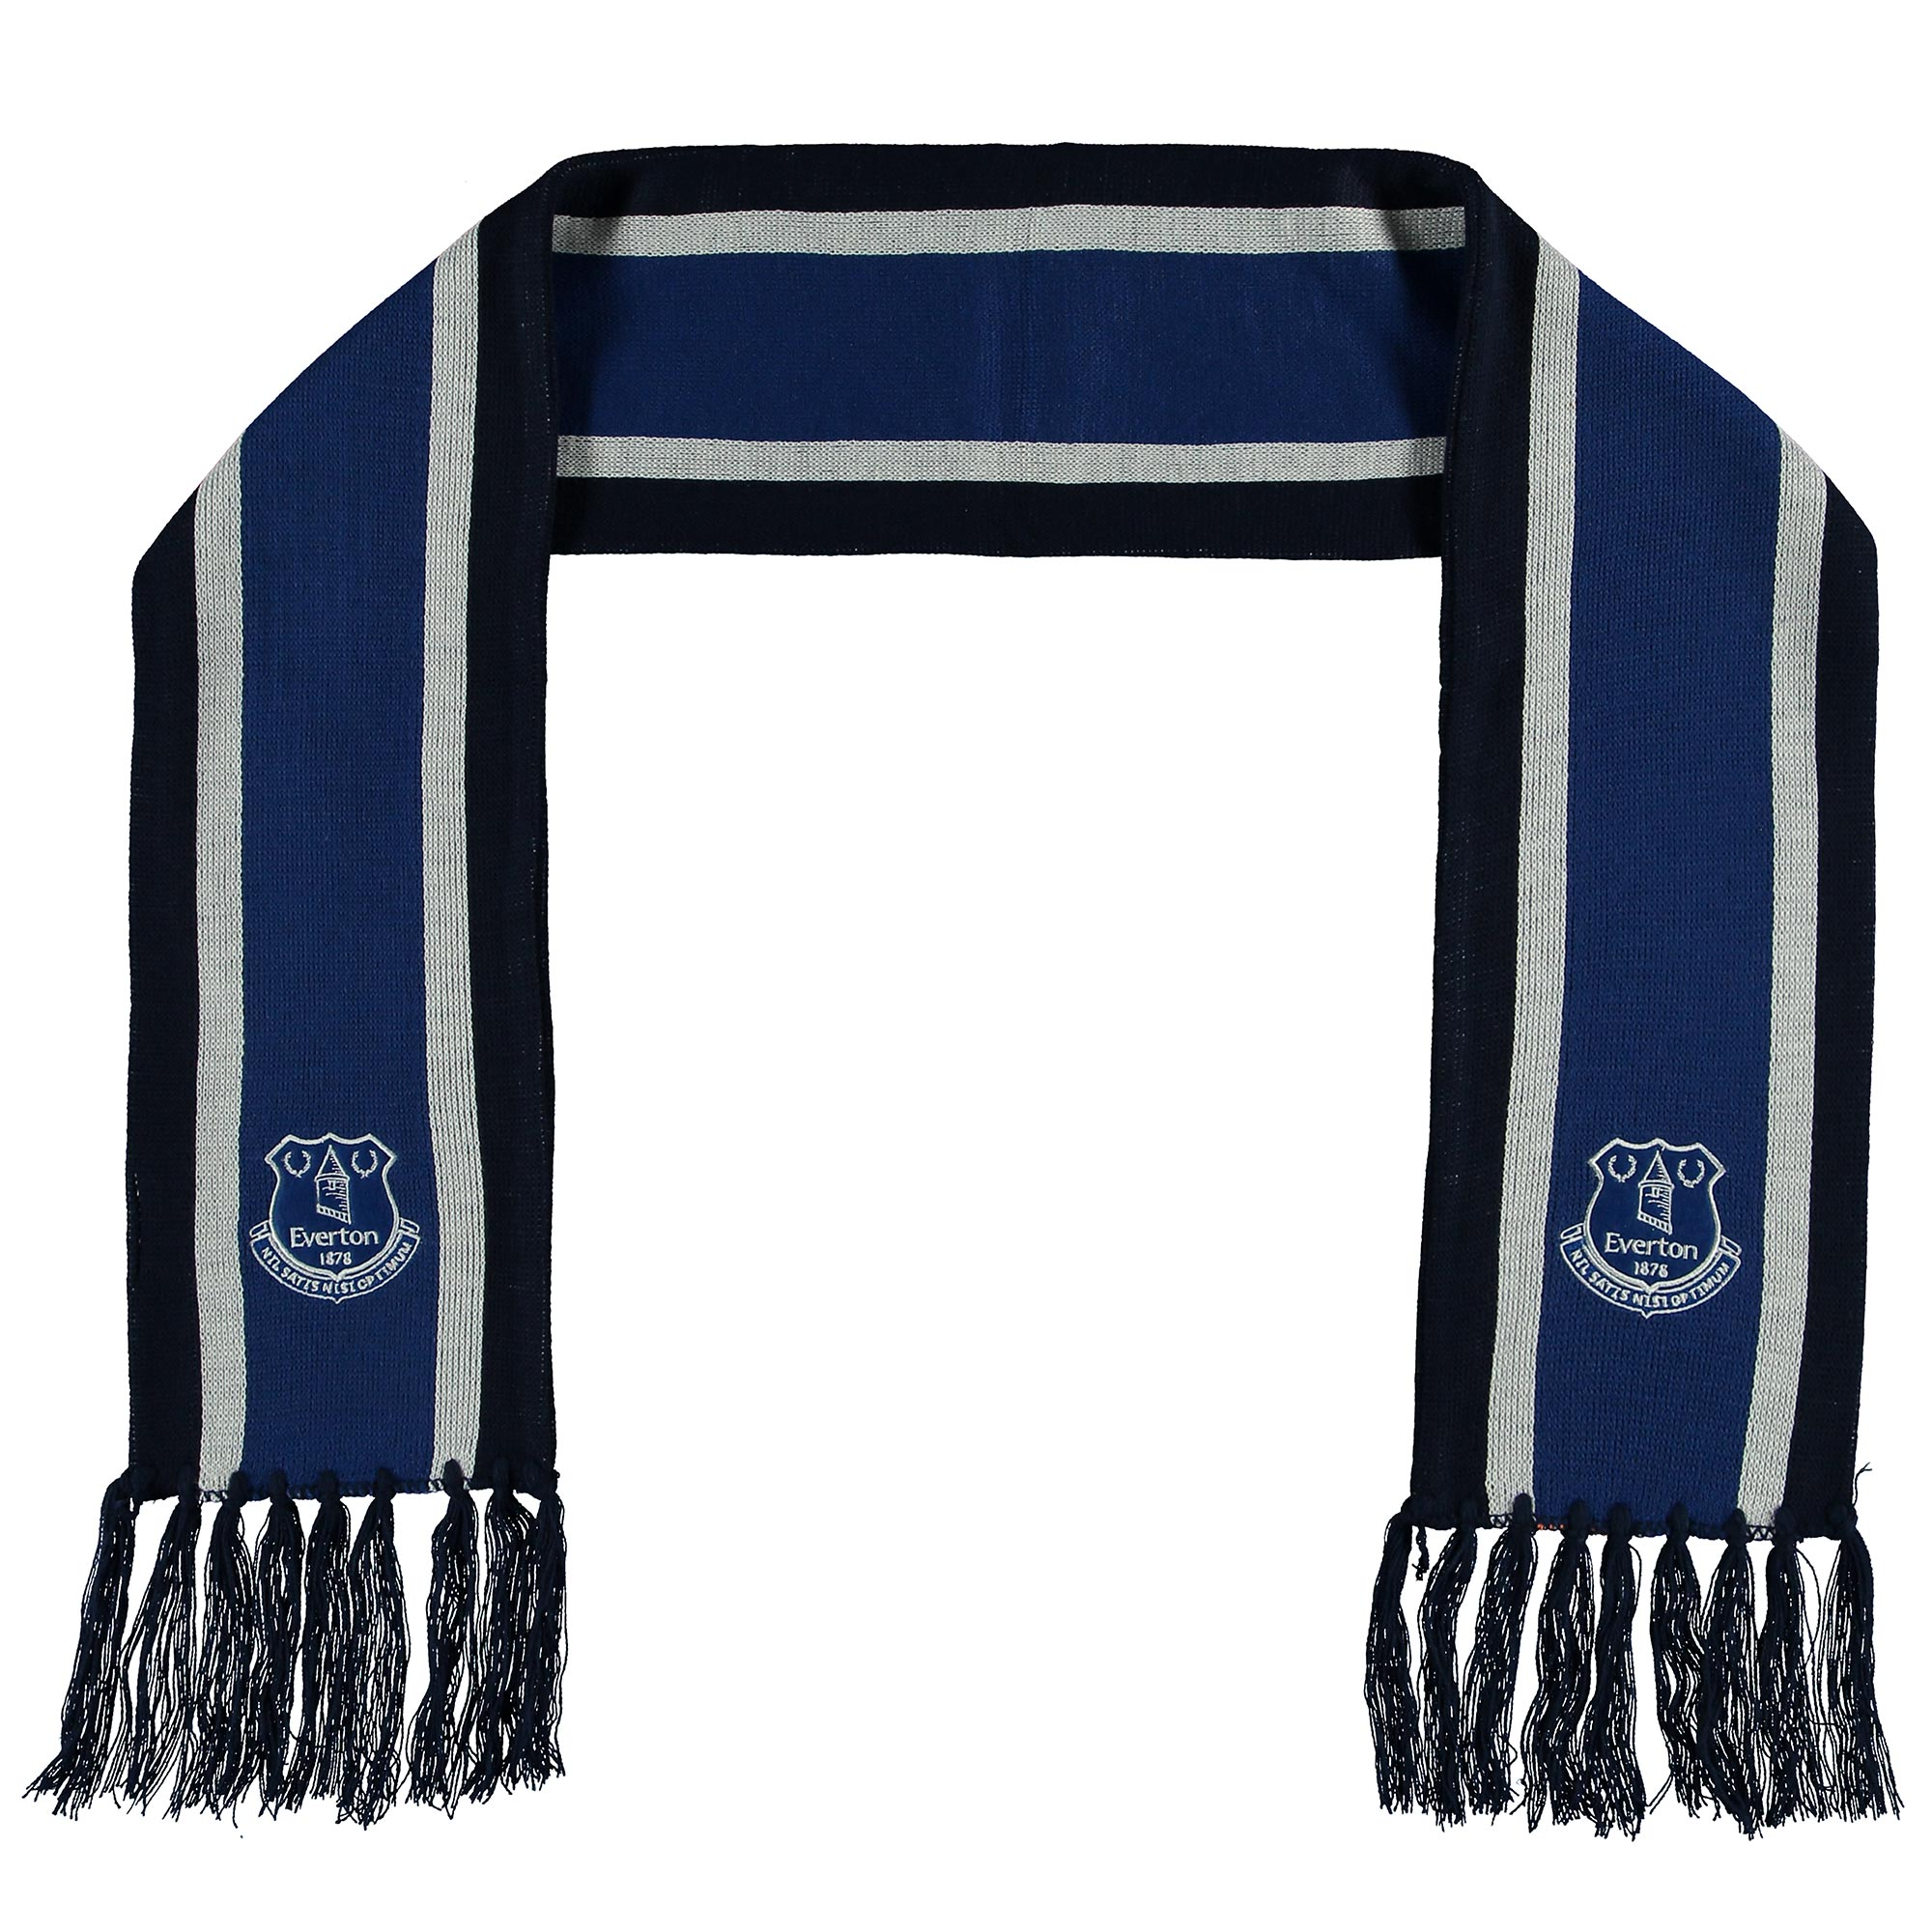 Everton University Scarf - Royal